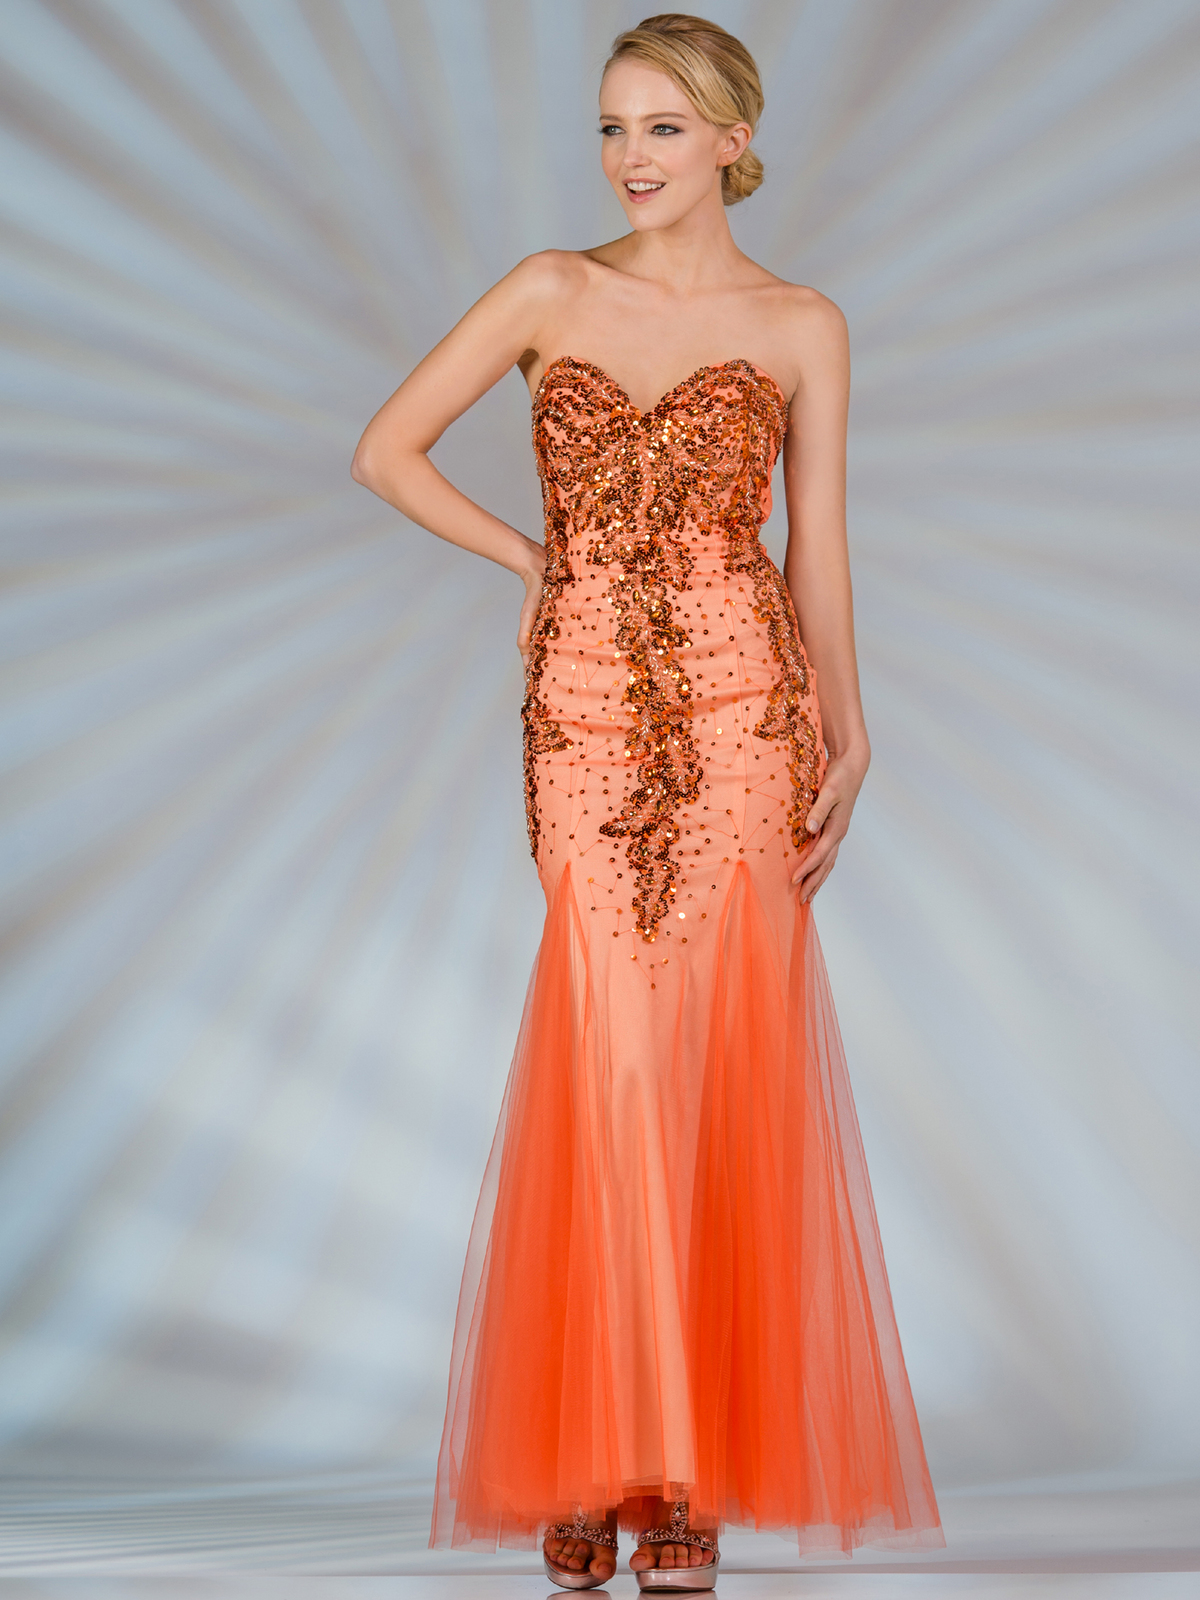 Orange Strapless Mermaid Prom Dress | Sung Boutique L.A.